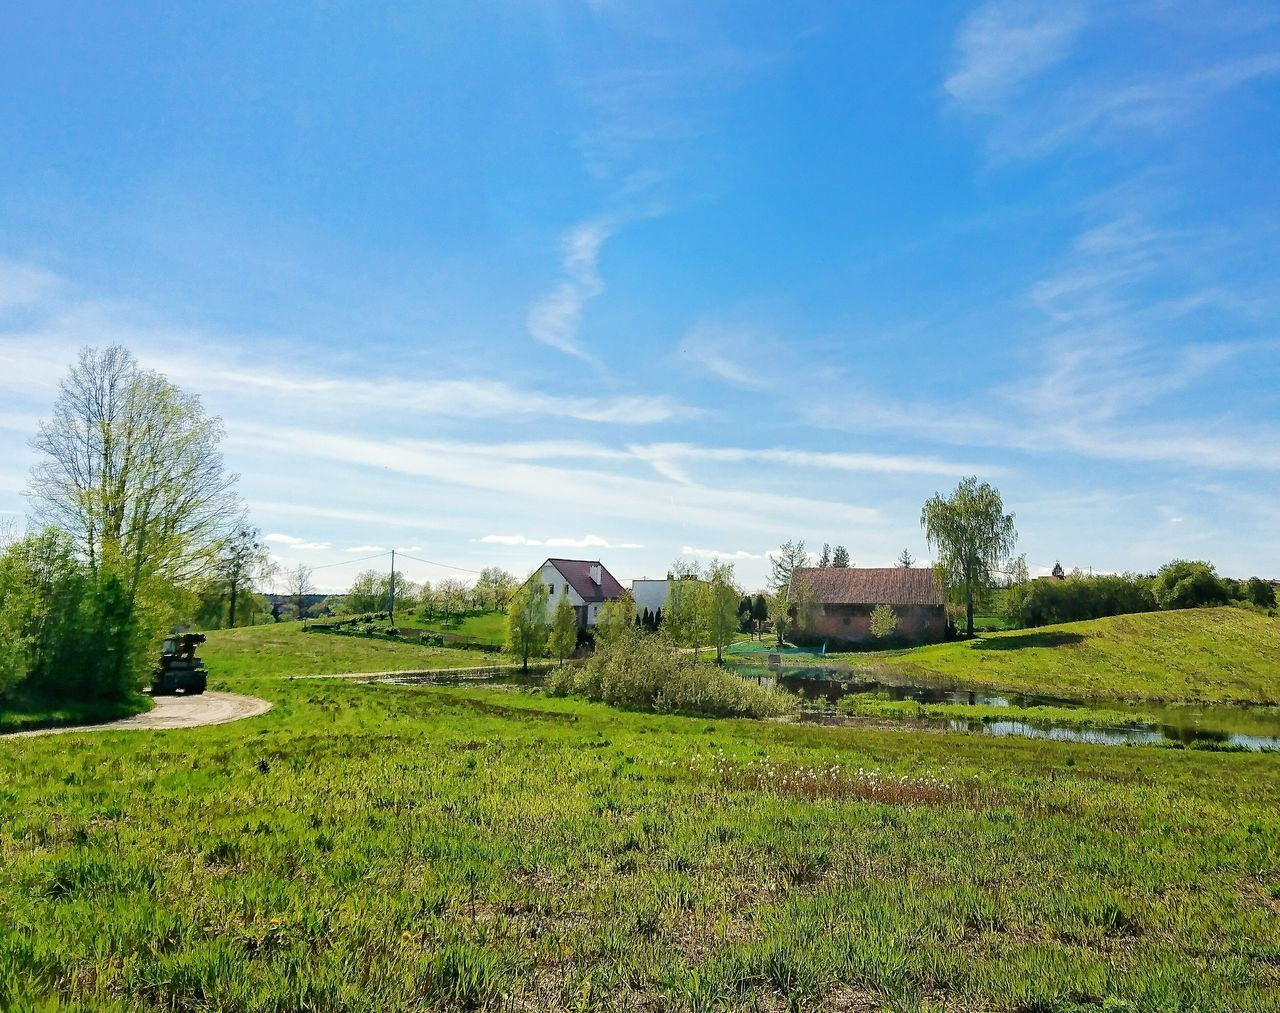 Field Nature Sky Beauty In Nature Grass Outdoors Scenics No People Day Spring Mazury Warmia Polska Poland Village Village Life Village View Village House Villagescape Village Photography Wies Spring Wiosna